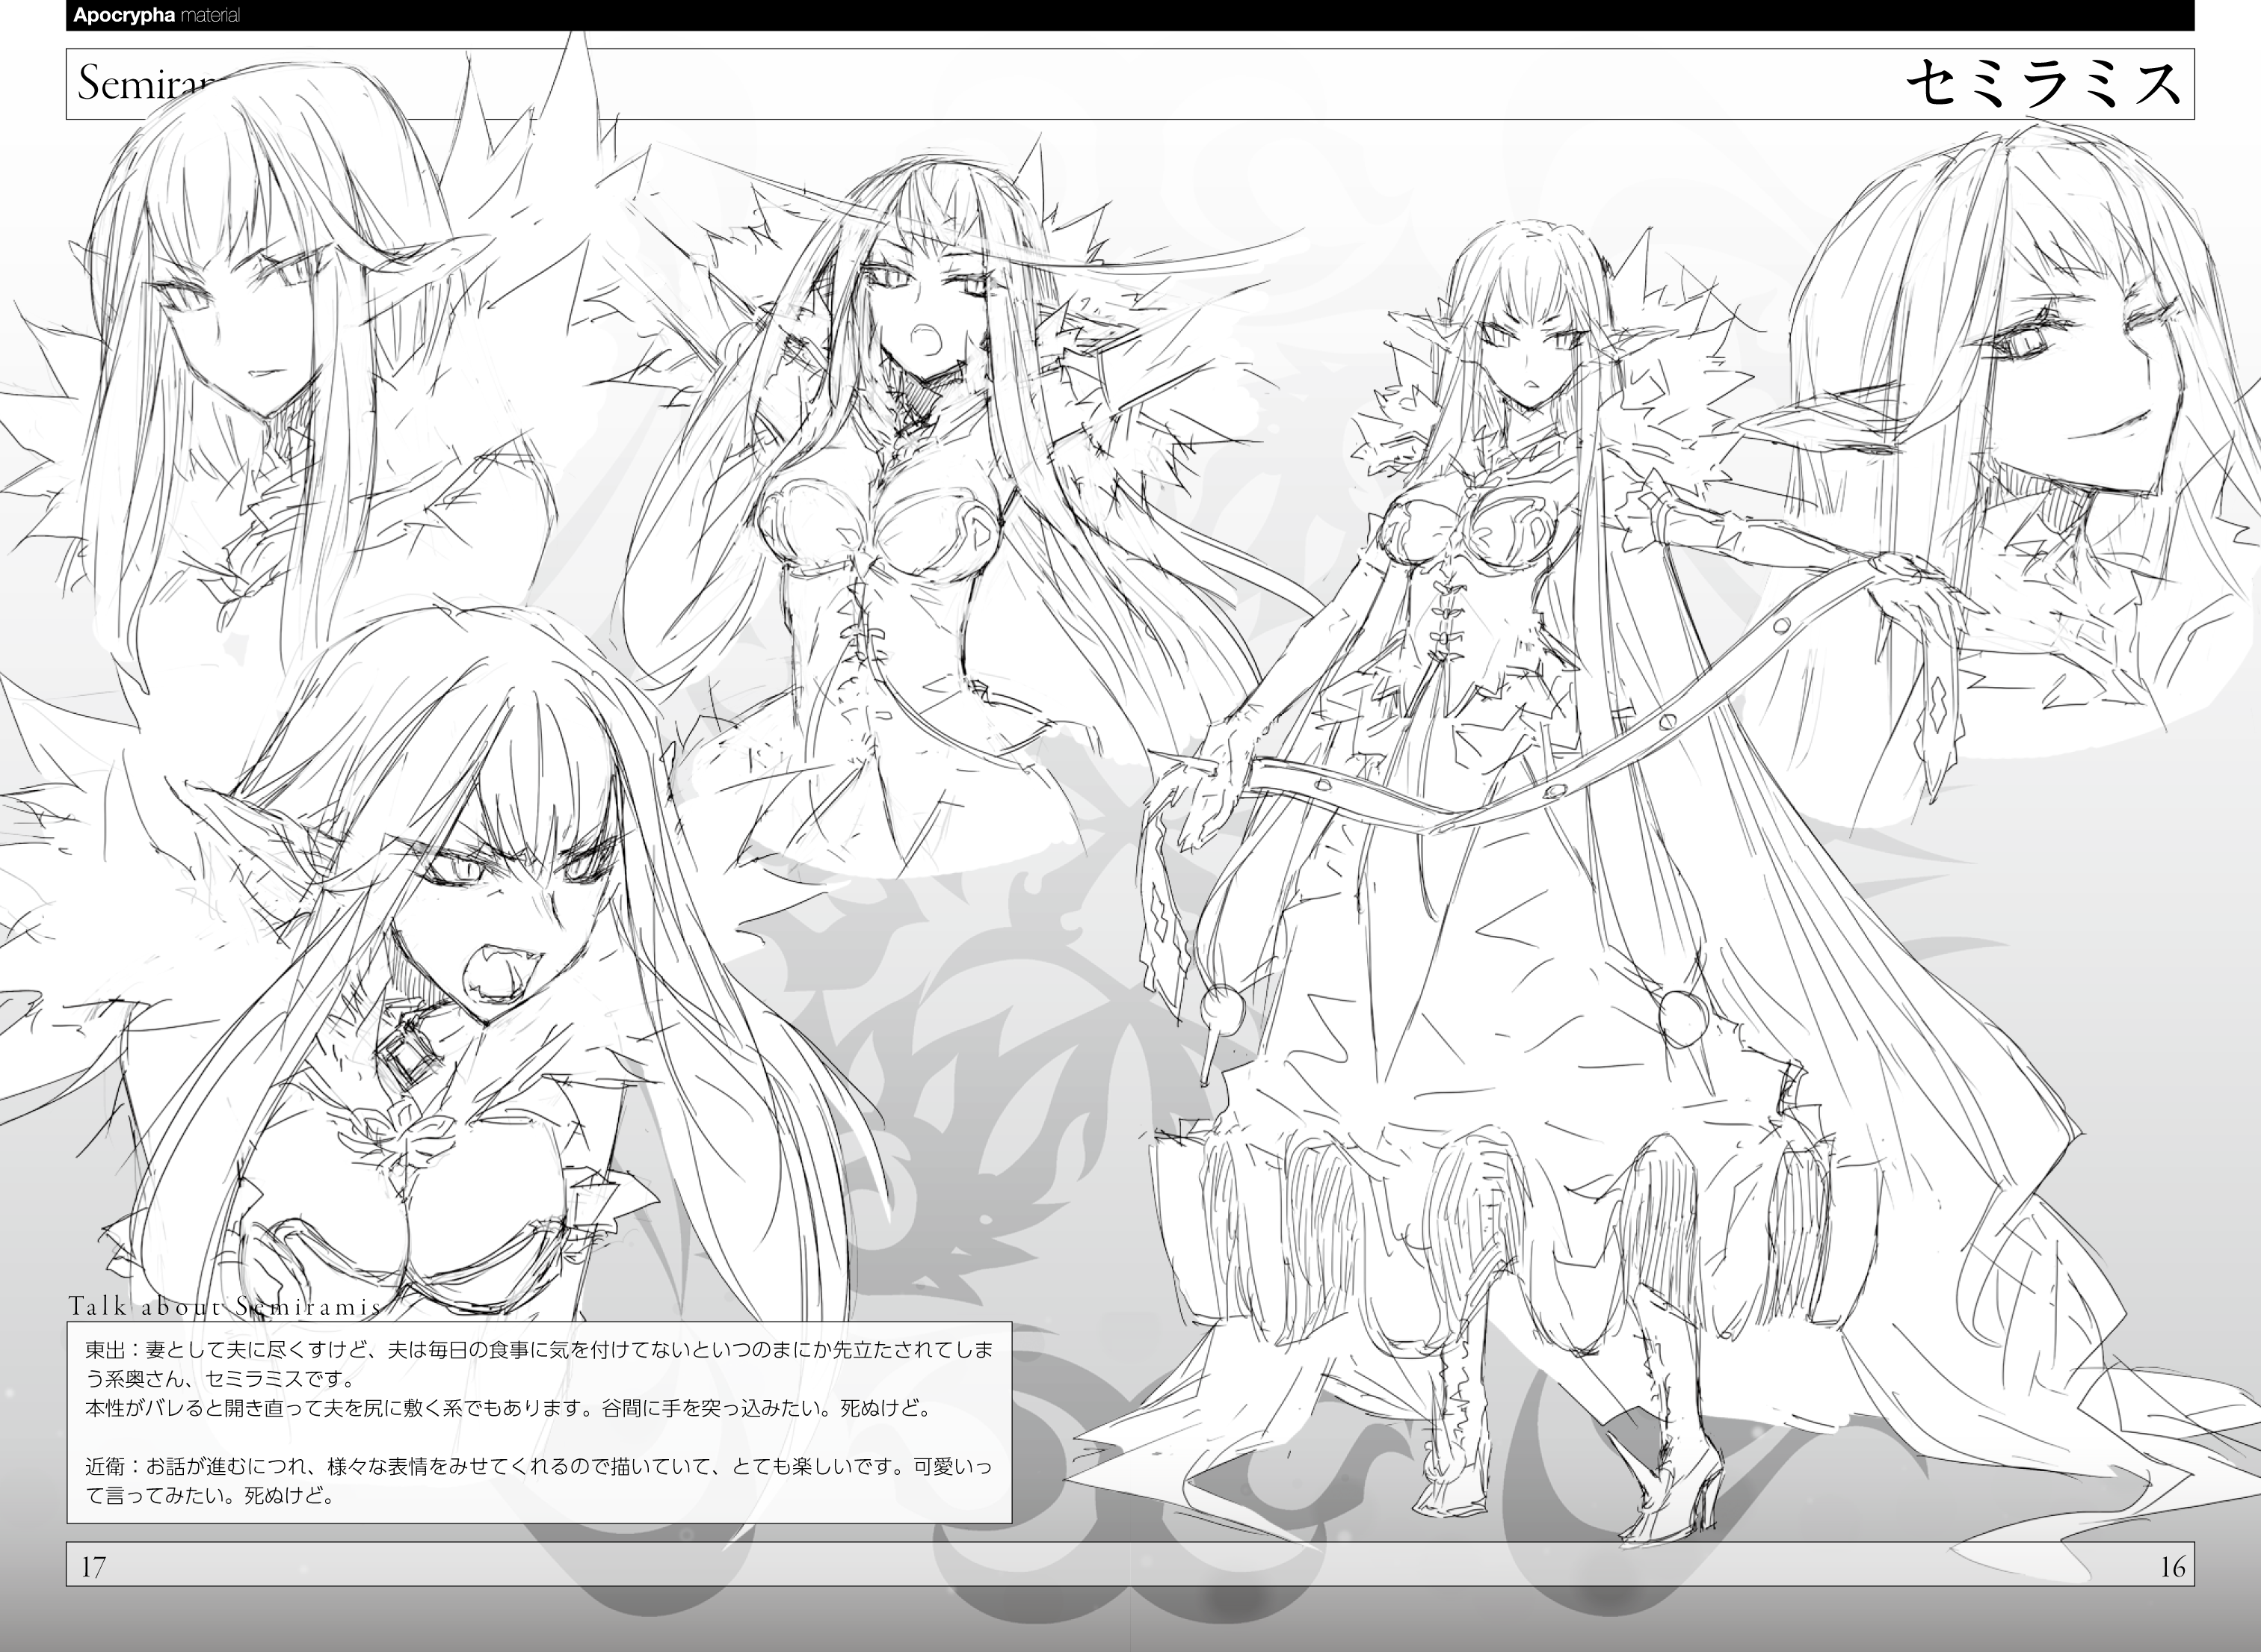 Fate Apocrypha Artbook Is Free to Help Promote TYPE-MOON's Comiket 87 Planned Releases haruhichan.com Character design 4